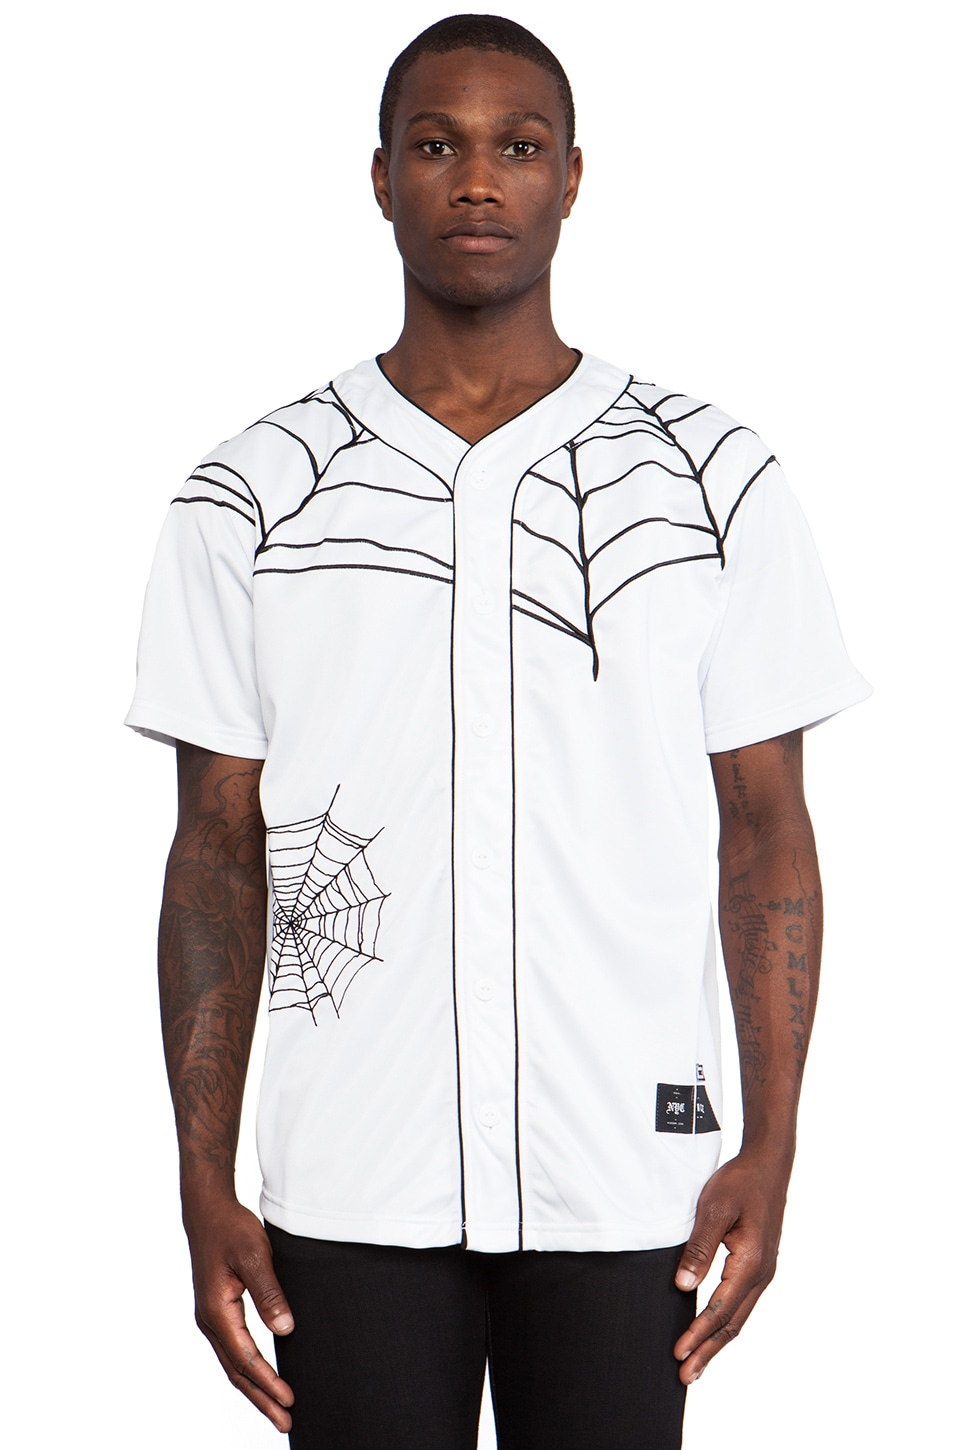 40 OZ NY Spider Web Baseball Jersey in White